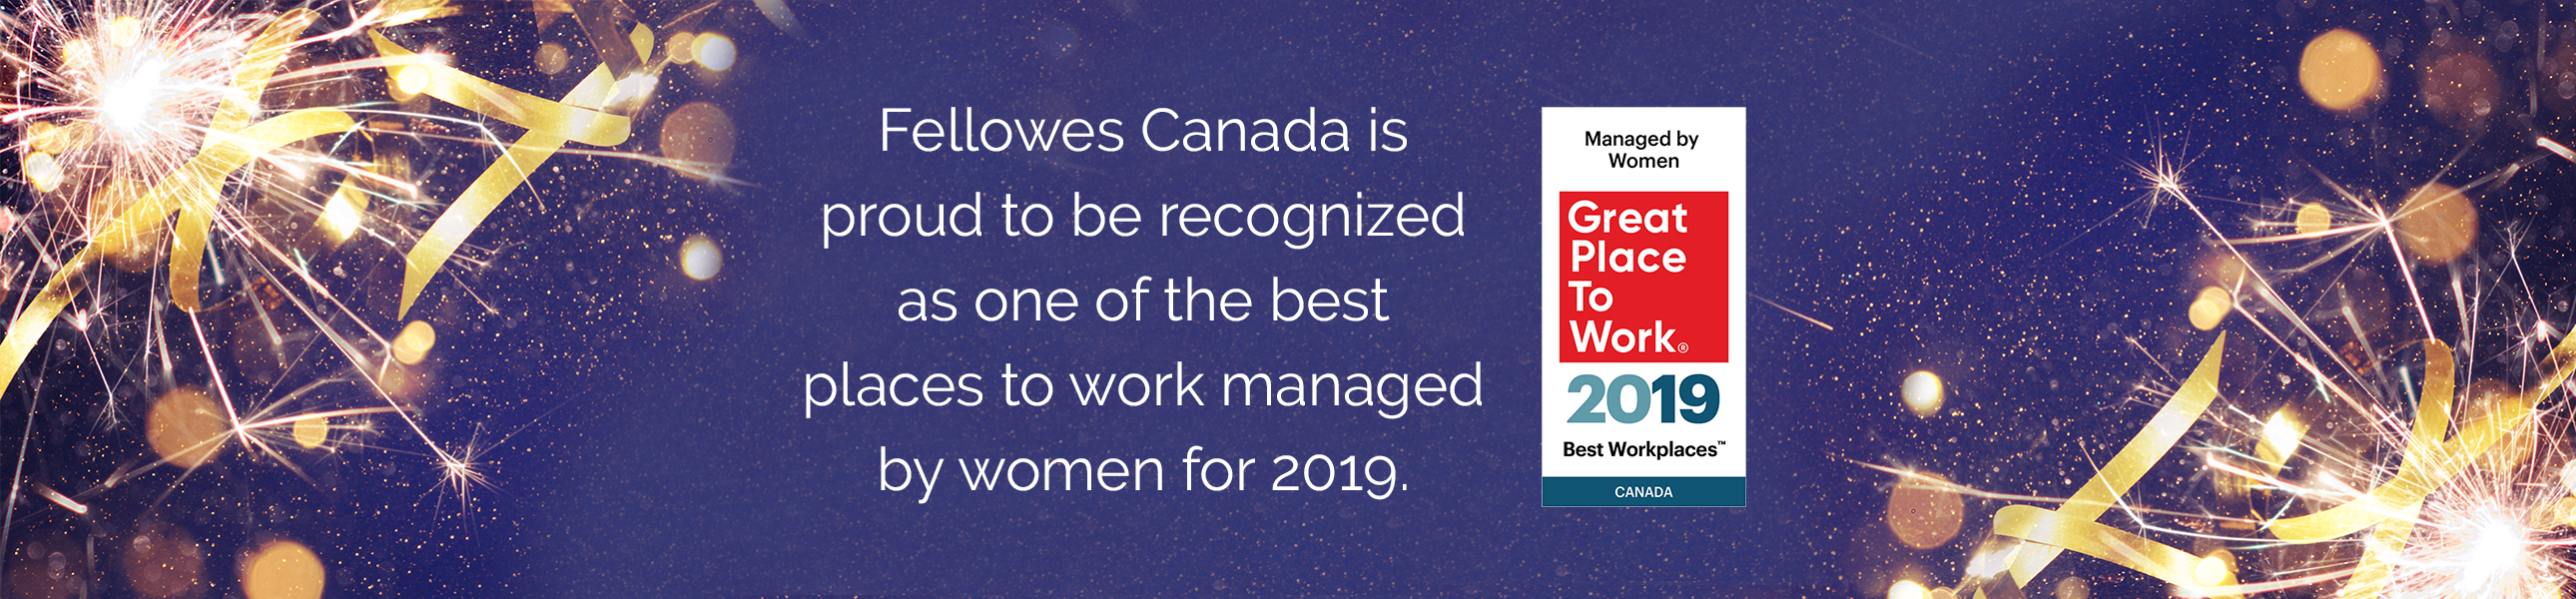 Fellowes Canada - Best Workplaces Managed By Women